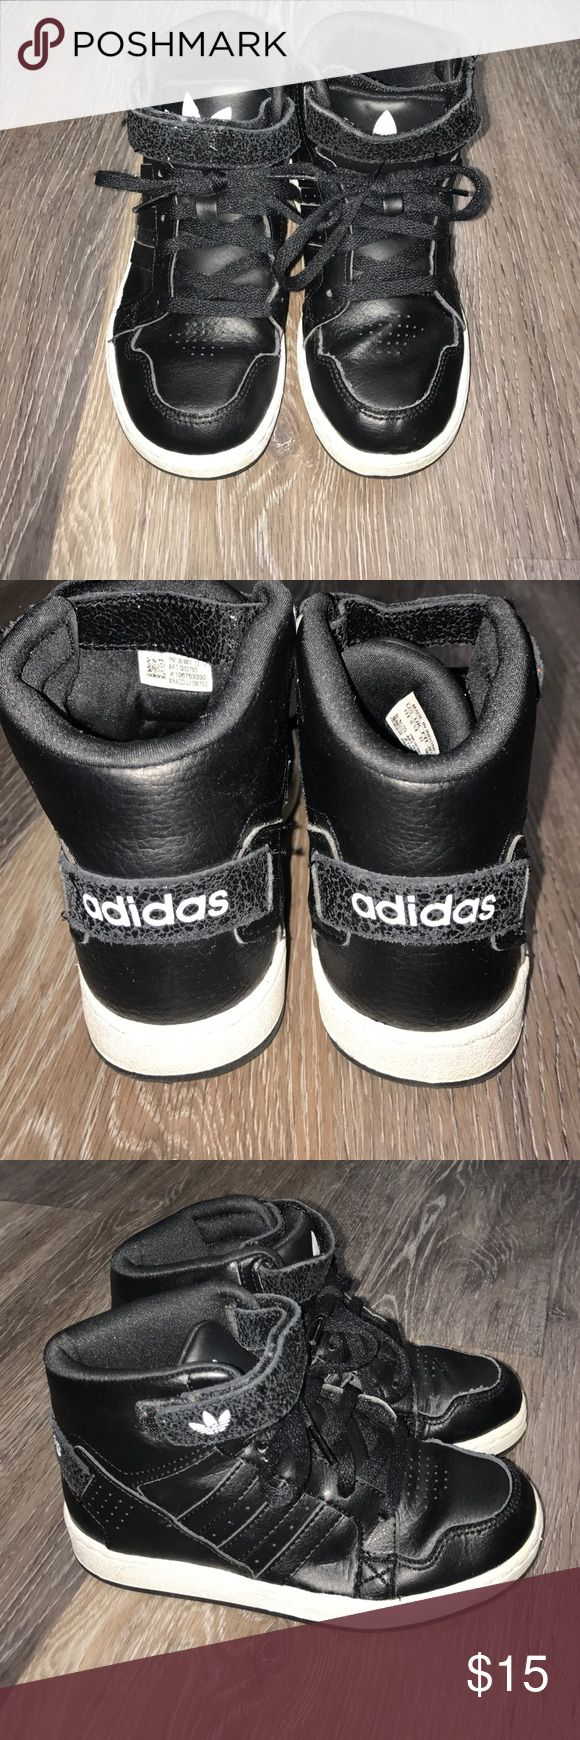 Boys adidas hightops Classic adidas, Ortholite style, all black w white detail, perfect condition Adidas Shoes Sneakers